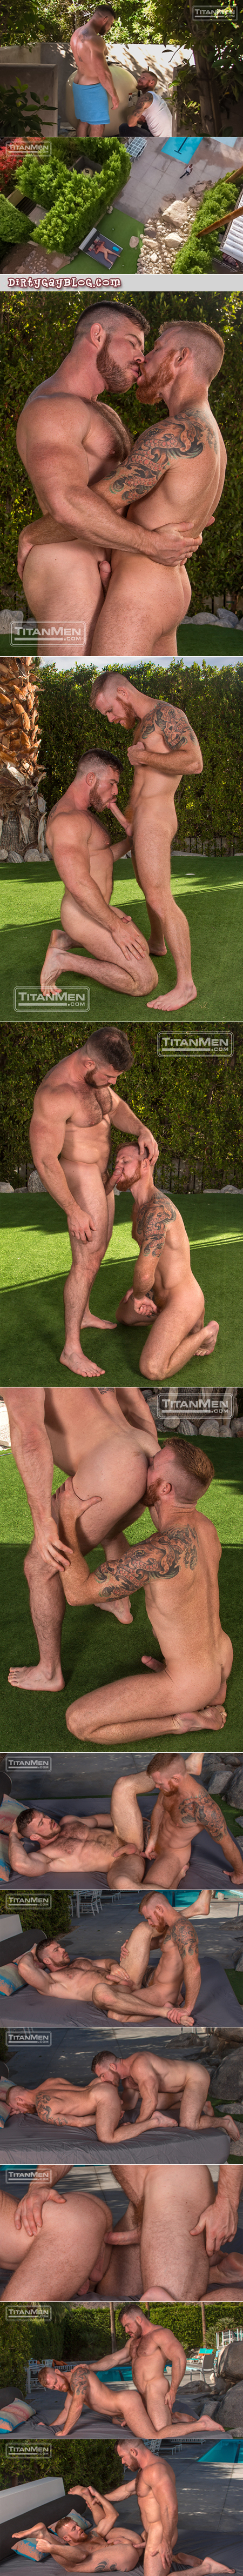 Ginger pool boy servicing his hairy muscular customer.